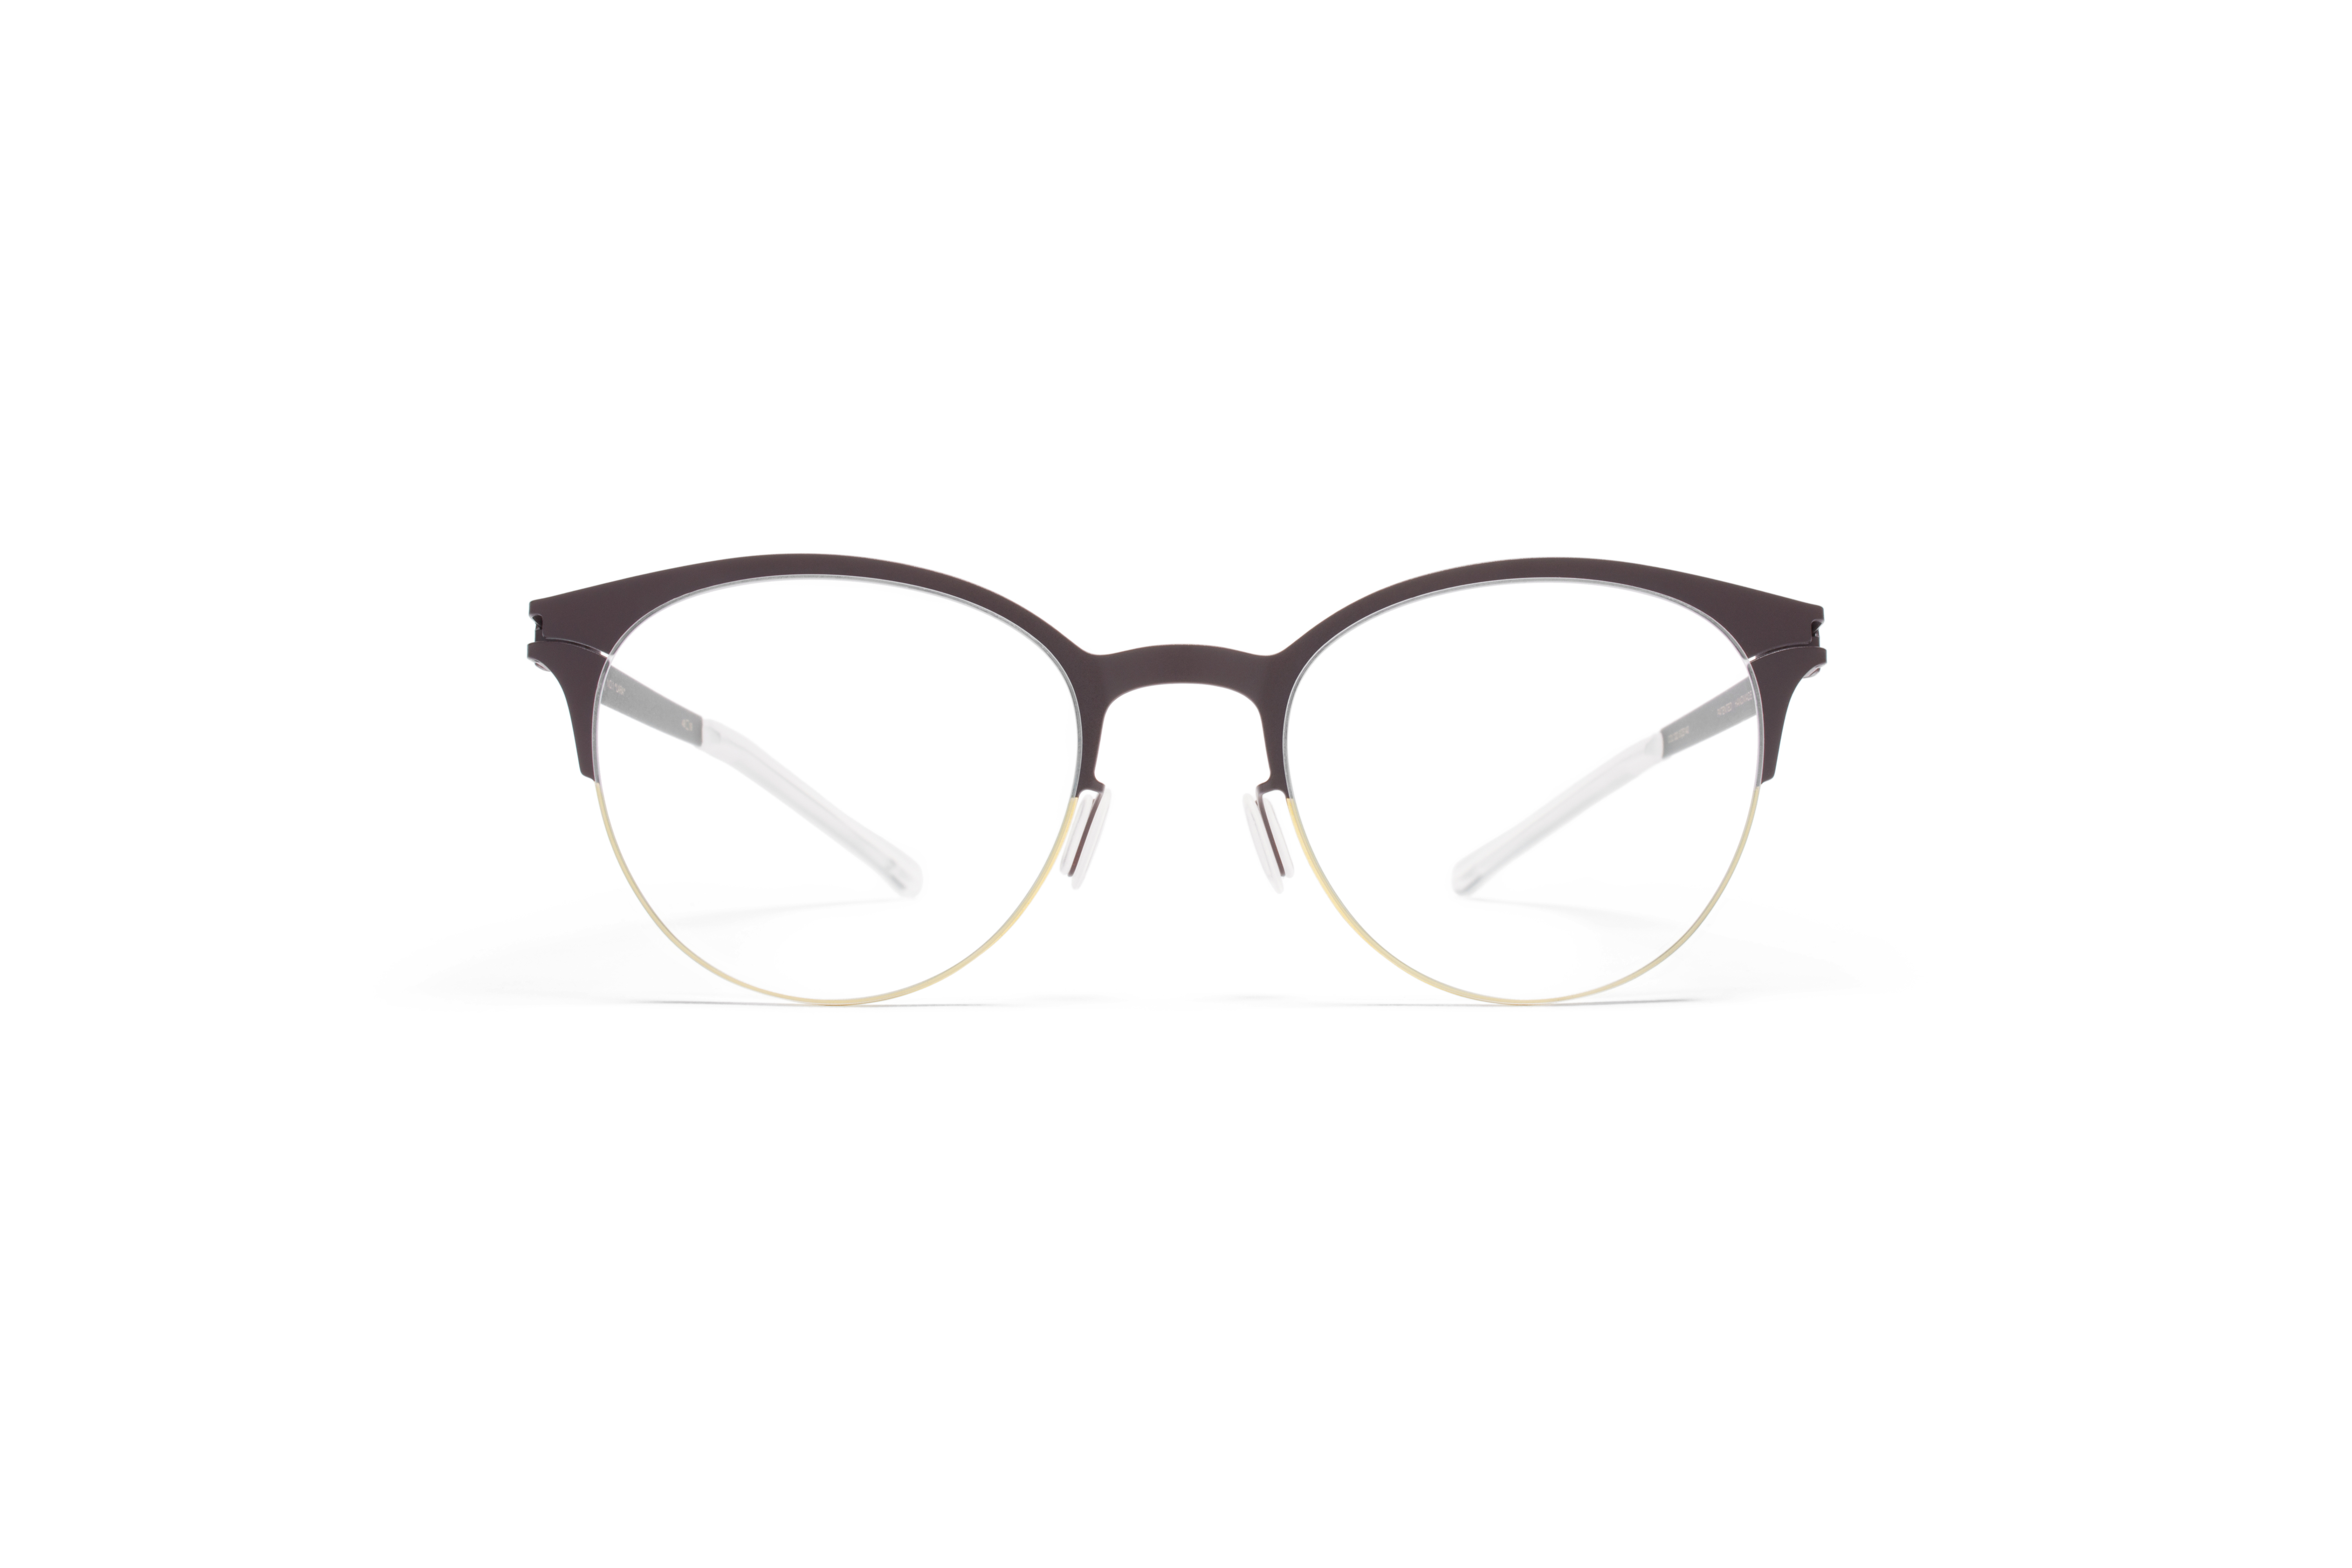 MYKITA No1 Rx Lara Gold Darkbrown Clear P562aafa74cb9a